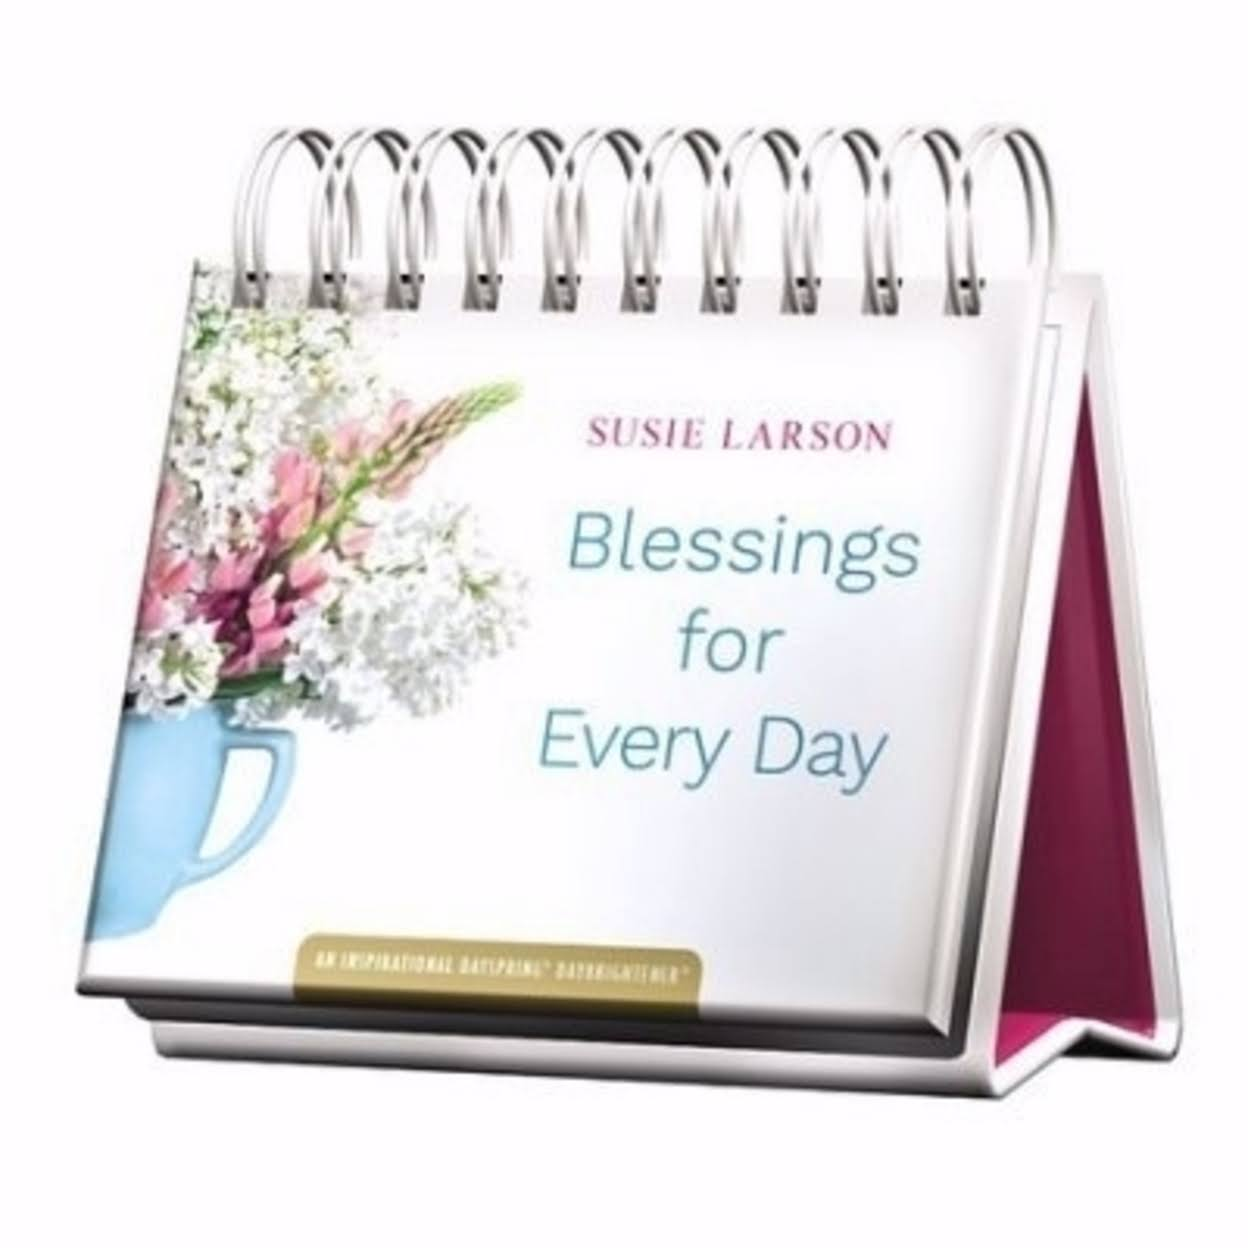 Dayspring Daybrightener Perpetual Flip Calendar - Blessings For Every Day